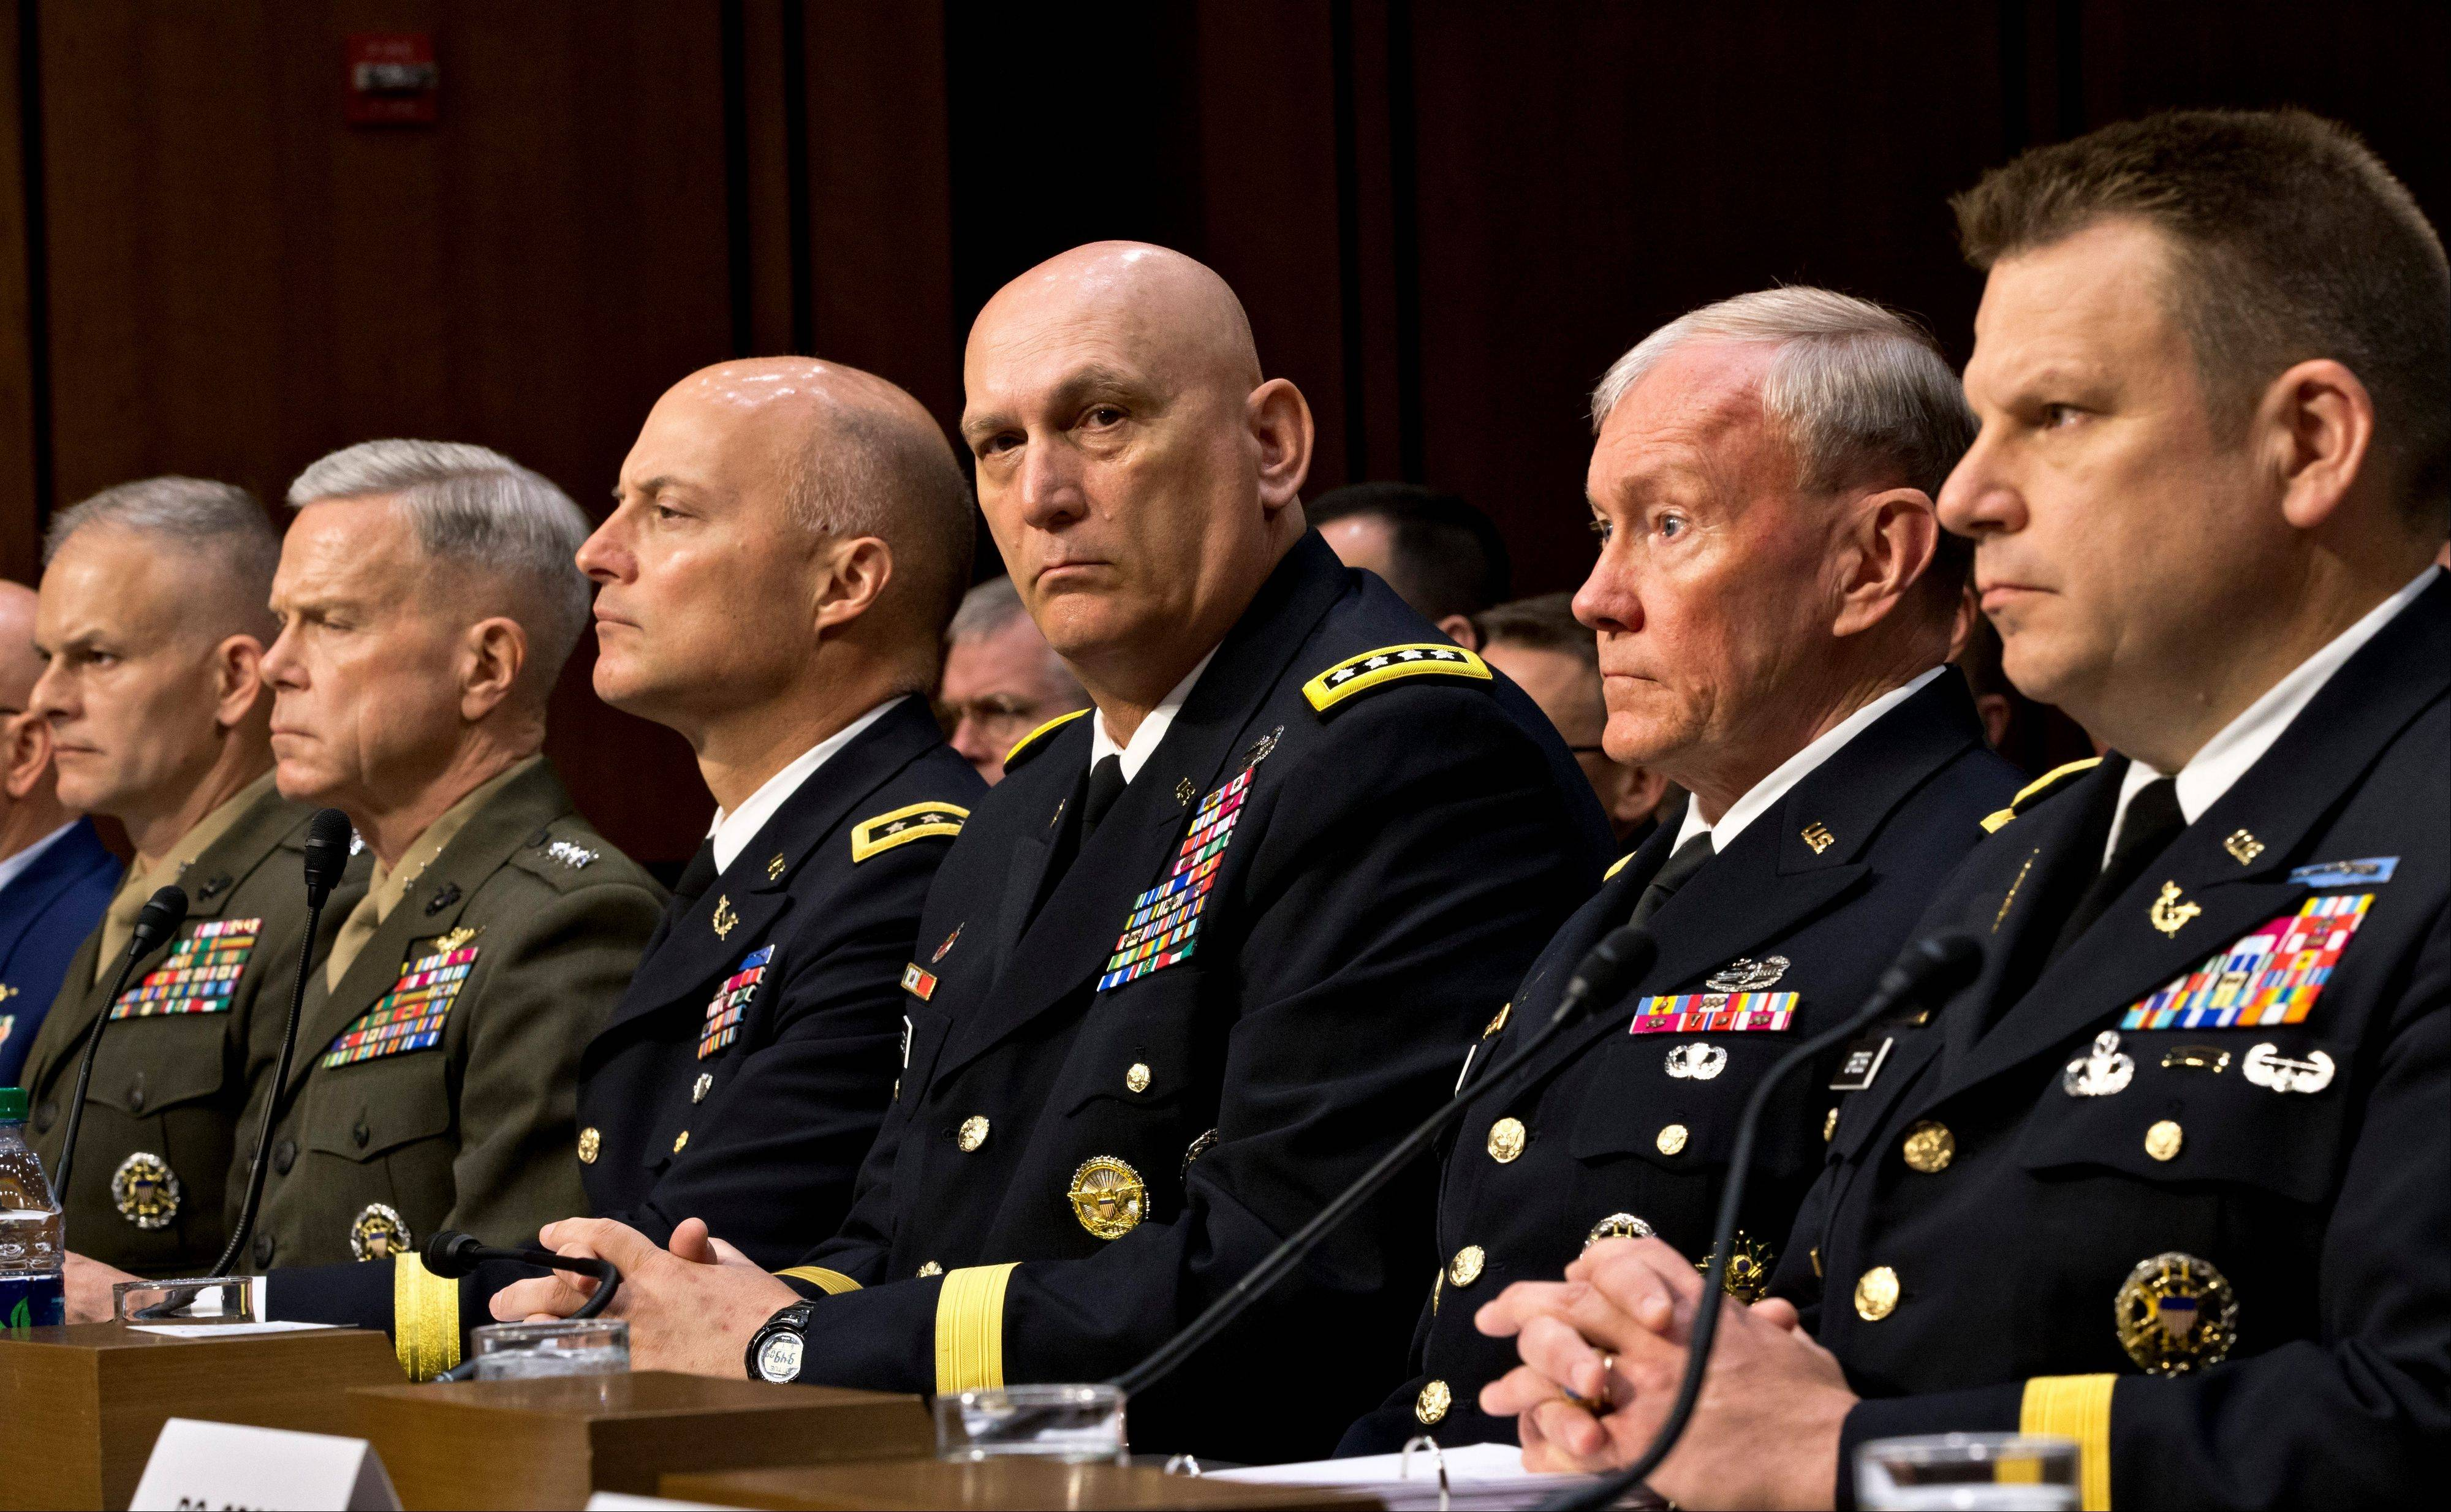 ASSOCIATED PRESS As Congress investigates the growing epidemic of sexual assaults within the military, the Senate Armed Services Committee held a hearing on Capitol Hill Tuesday to demand answers from top uniformed leaders. From right to left are: Legal Counsel to the Chairman of the Joint Chiefs of Staff Brig. Gen. Richard C. Gross, Joint Chiefs Chairman Gen. Martin Dempsey, Army Chief of Staff Gen. Ray Odierno, Judge Advocate General of the Army Lt. Gen. Dana K. Chipman, Commandant of the Marine Corps Gen. James F. Amos, and Staff Judge Advocate to the Marine Corps Commandant Maj. Gen. Vaughn A. Ary.